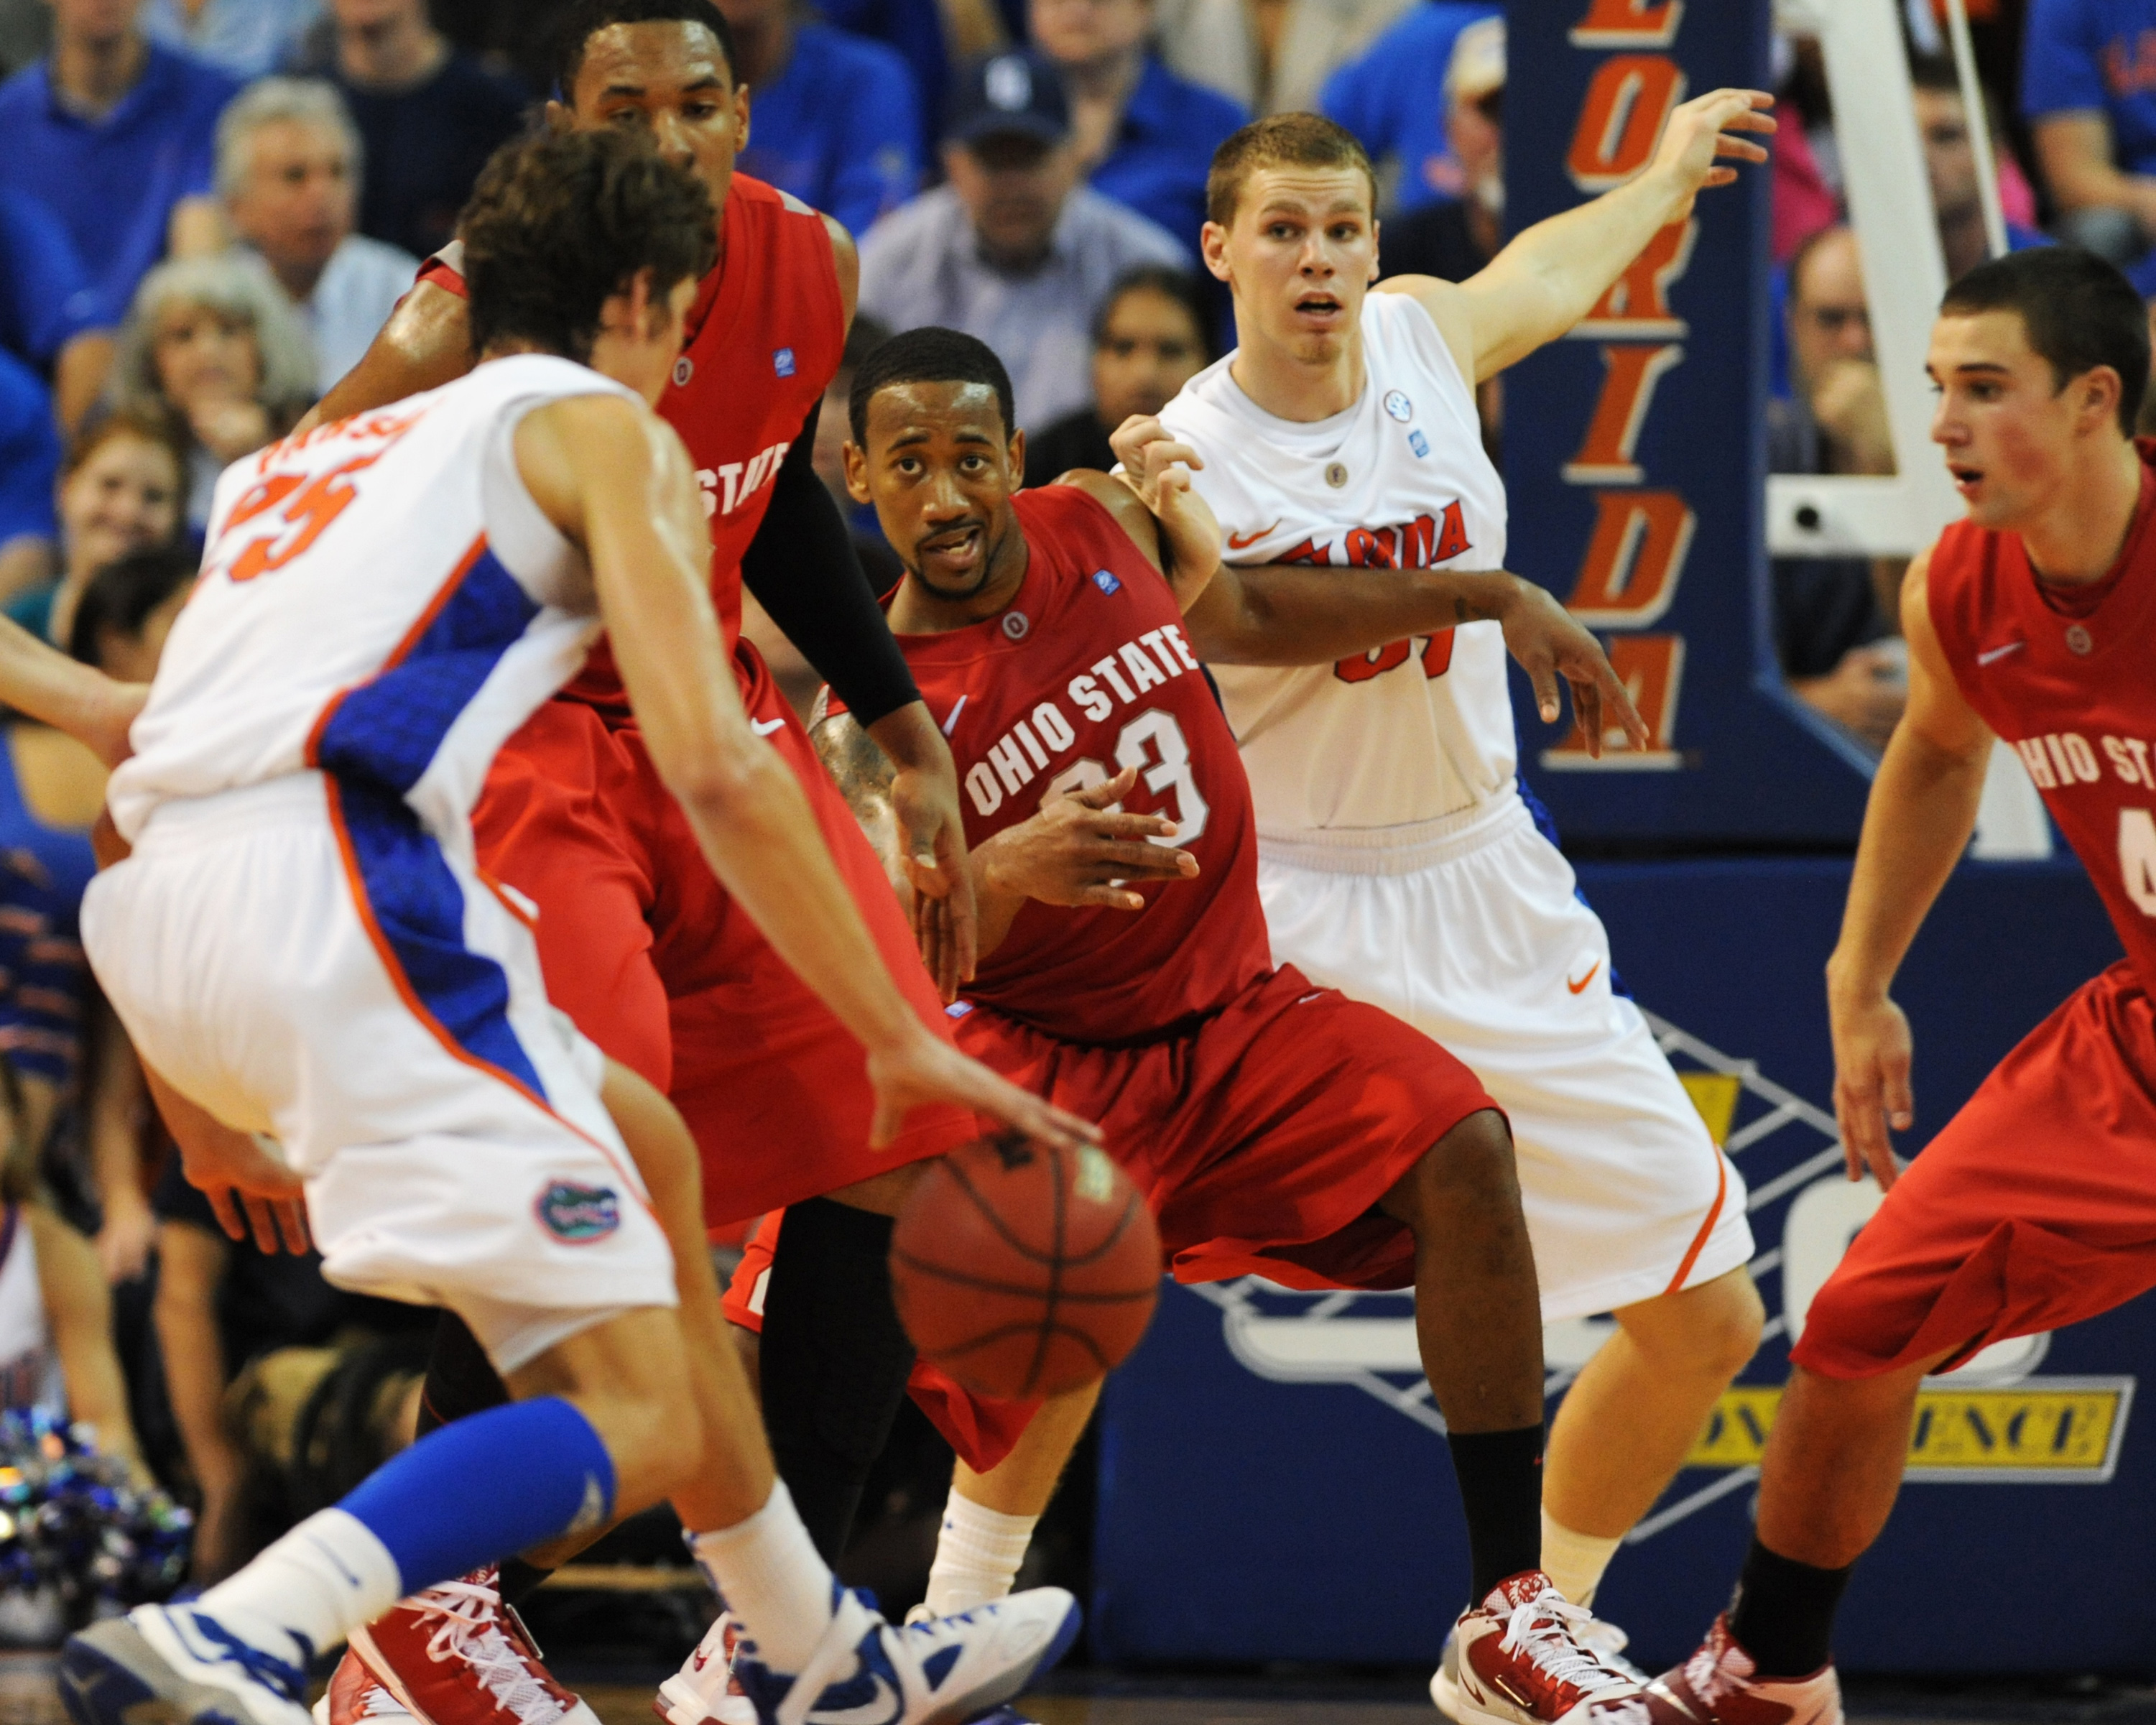 GAINESVILLE, FL - NOVEMBER 16: Guard David Lighty #23 of the Ohio State Buckeyes sets on defense against the Florida Gators November 16, 2010 at the Stephen C. O'Connell Center in Gainesville, Florida.  (Photo by Al Messerschmidt/Getty Images)